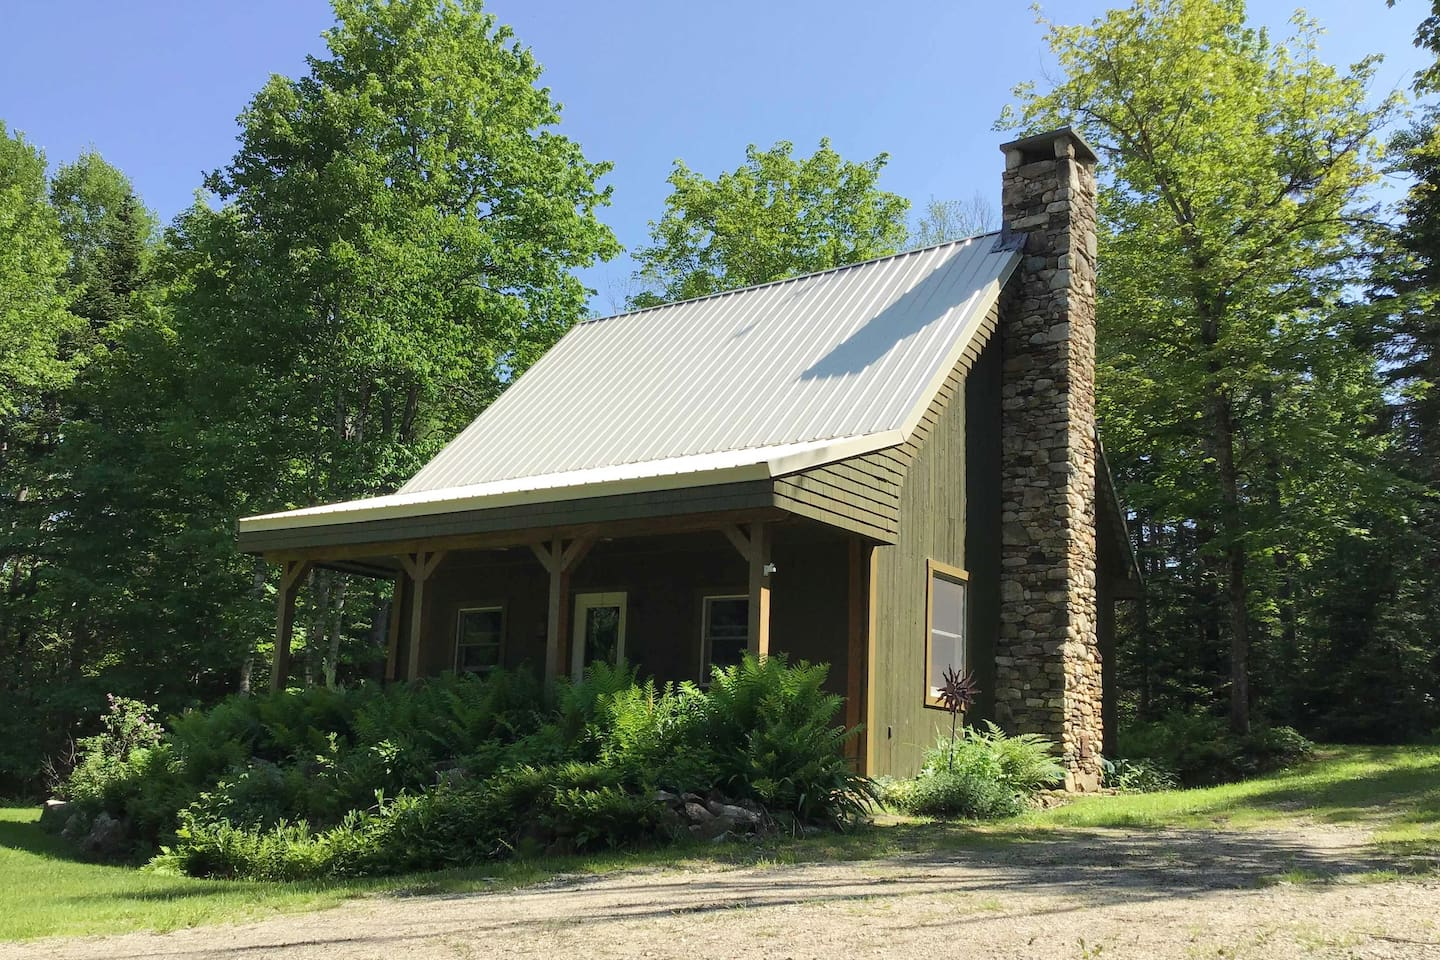 Relax, retreat, and unwind in nature...experience Bear Cub Cabin!